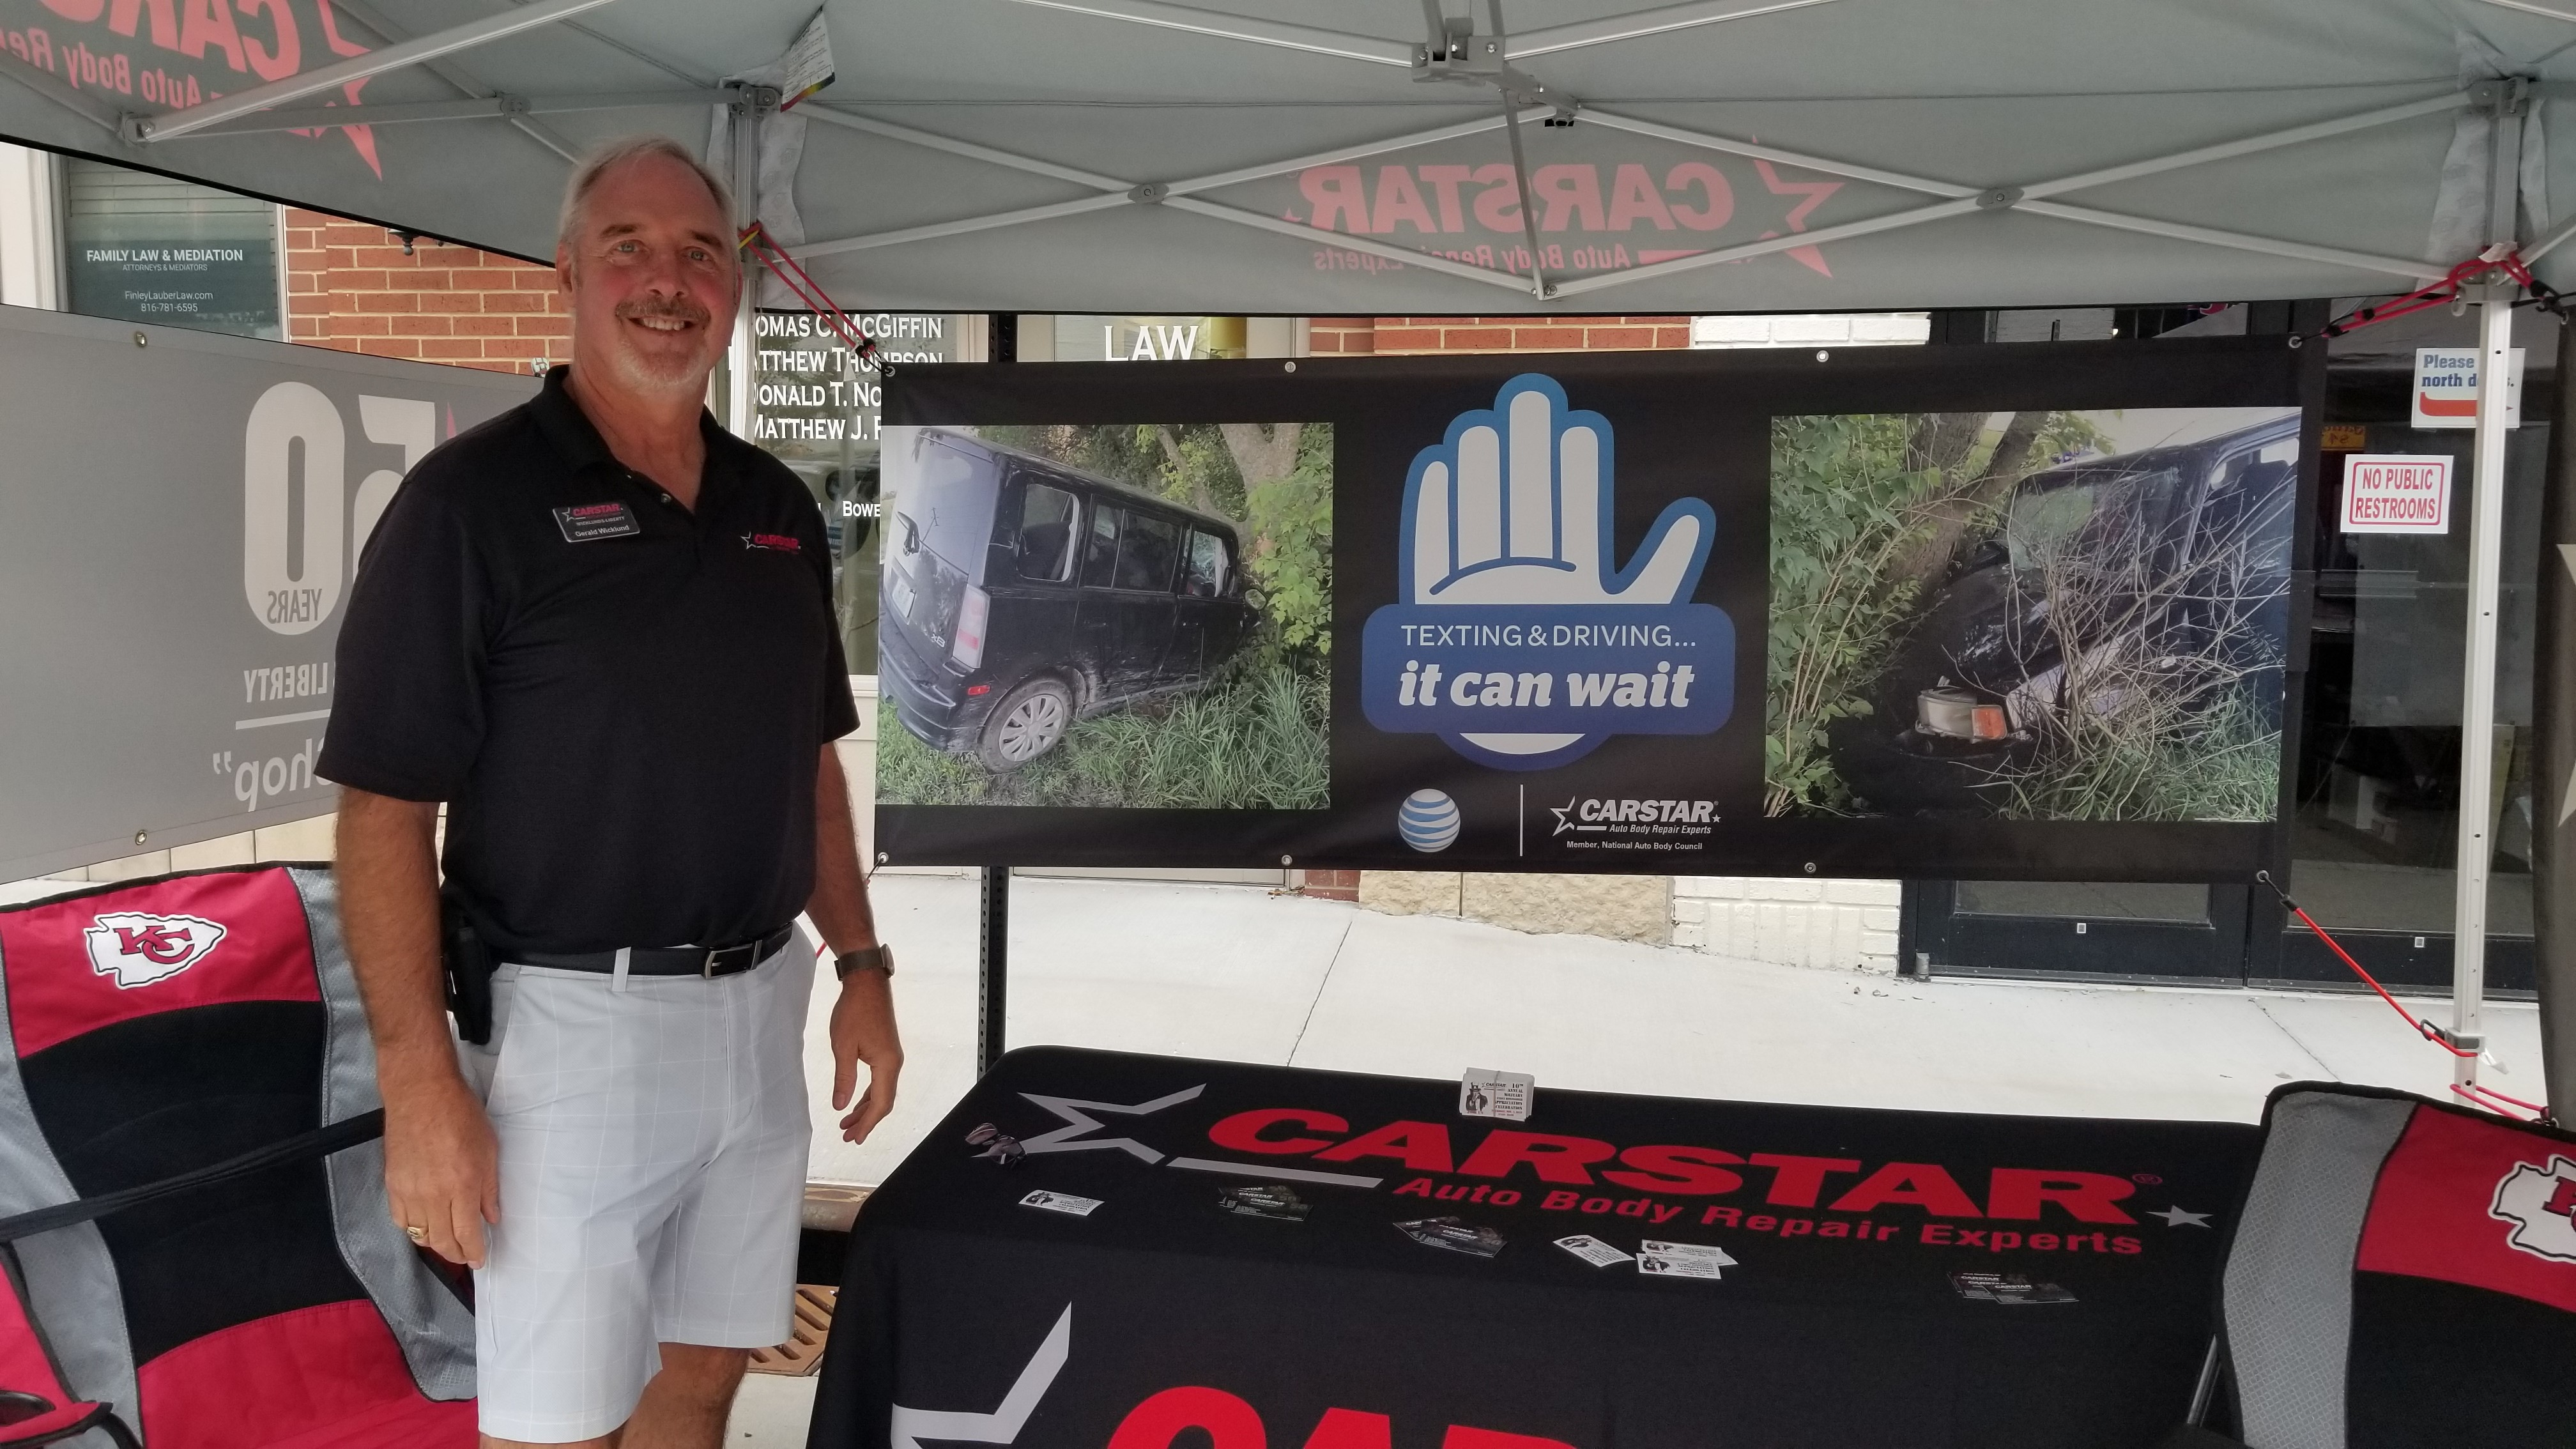 CARSTAR Wicklund It Can Wait Campaign